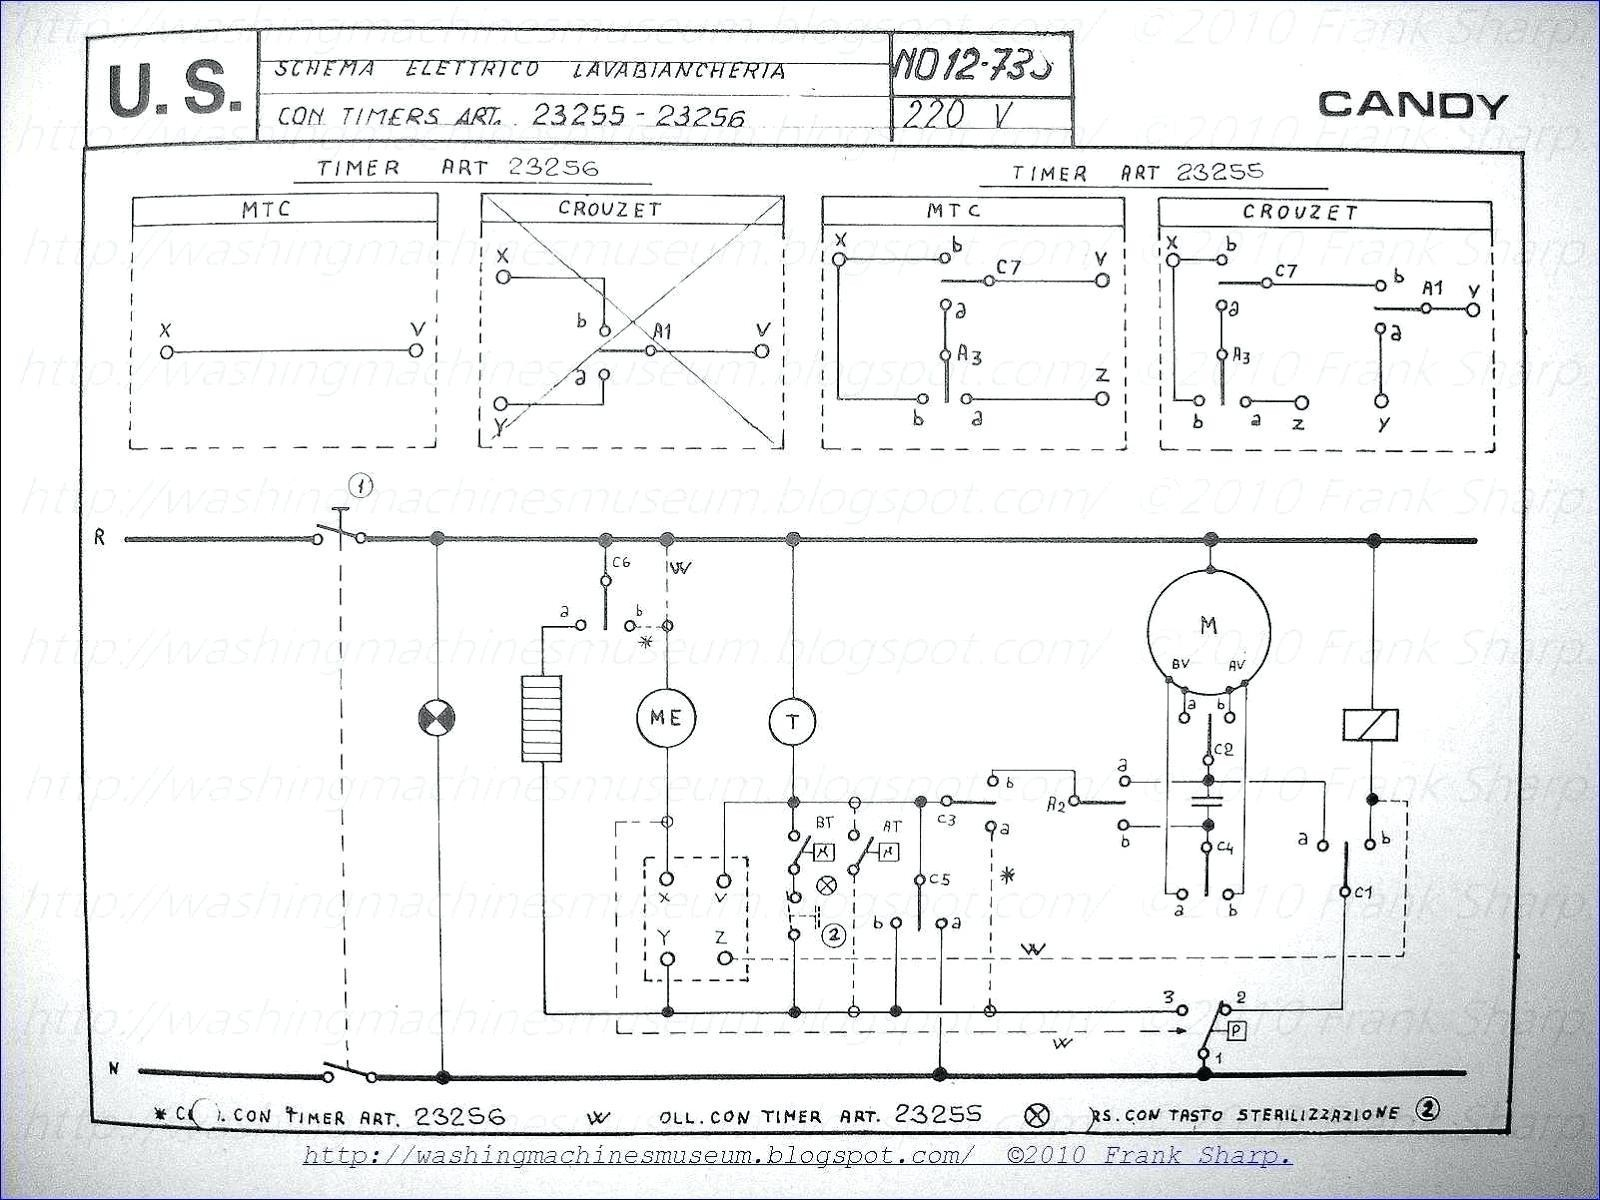 hotpoint dryer wiring diagram | free wiring diagram hotpoint refrigerator wiring diagram